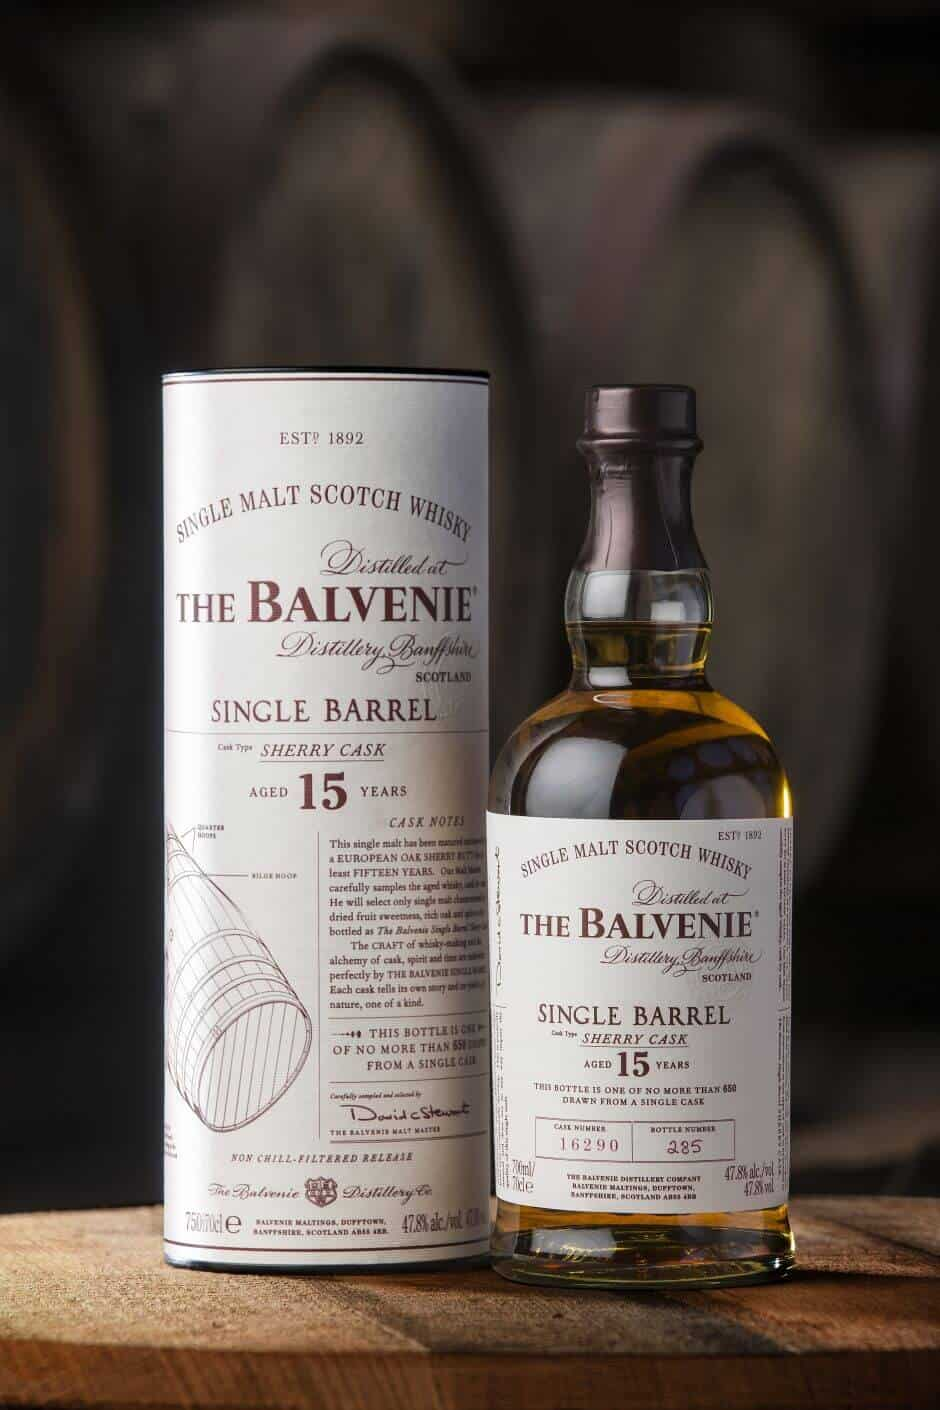 De nieuwste single barrel whisky van The Balvenie is de Single Barrel Sherry Cask